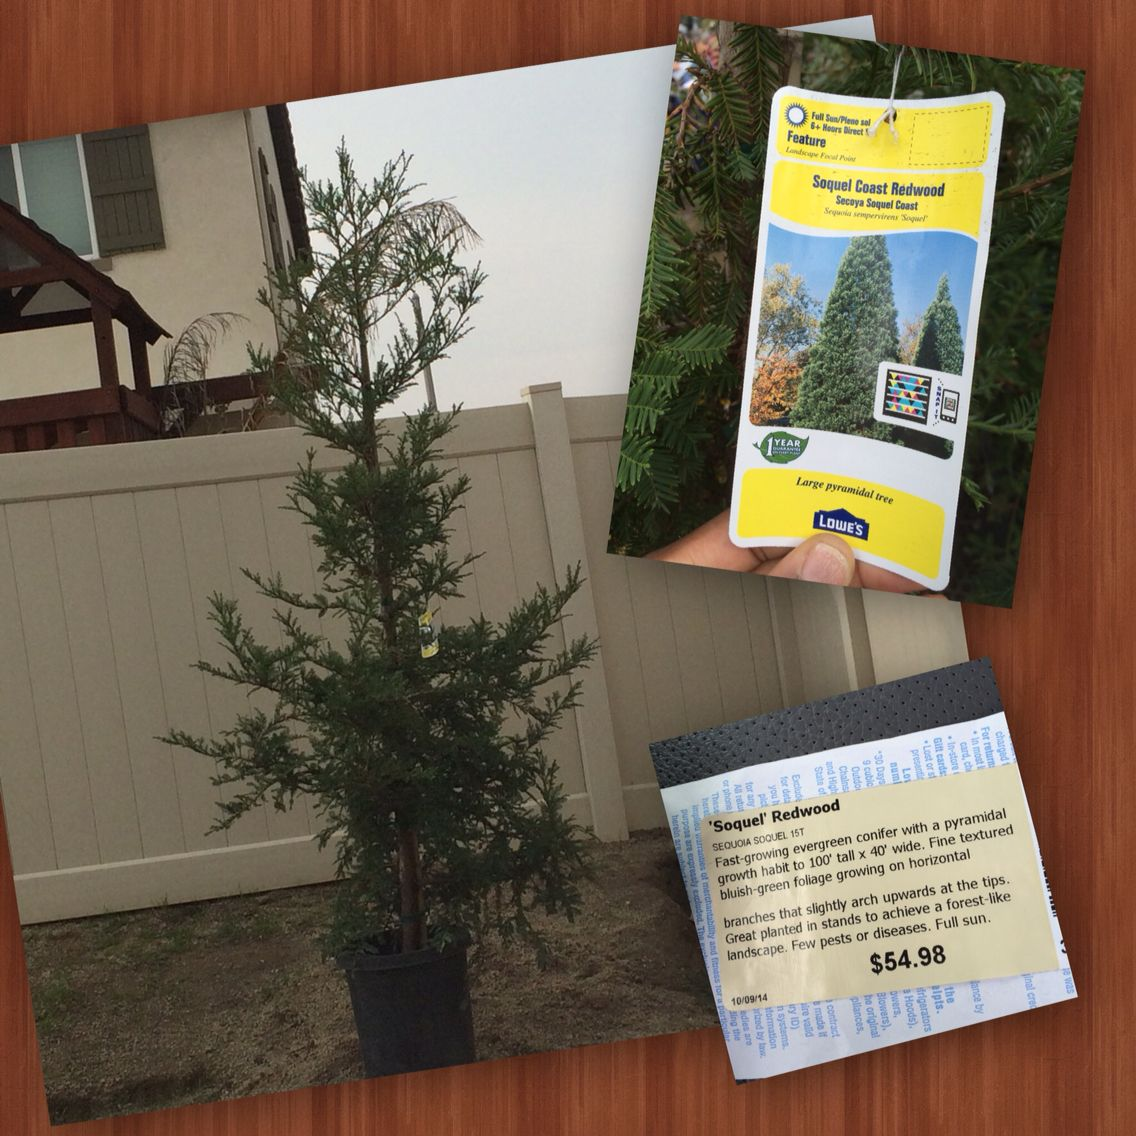 Our Redwood Tree!